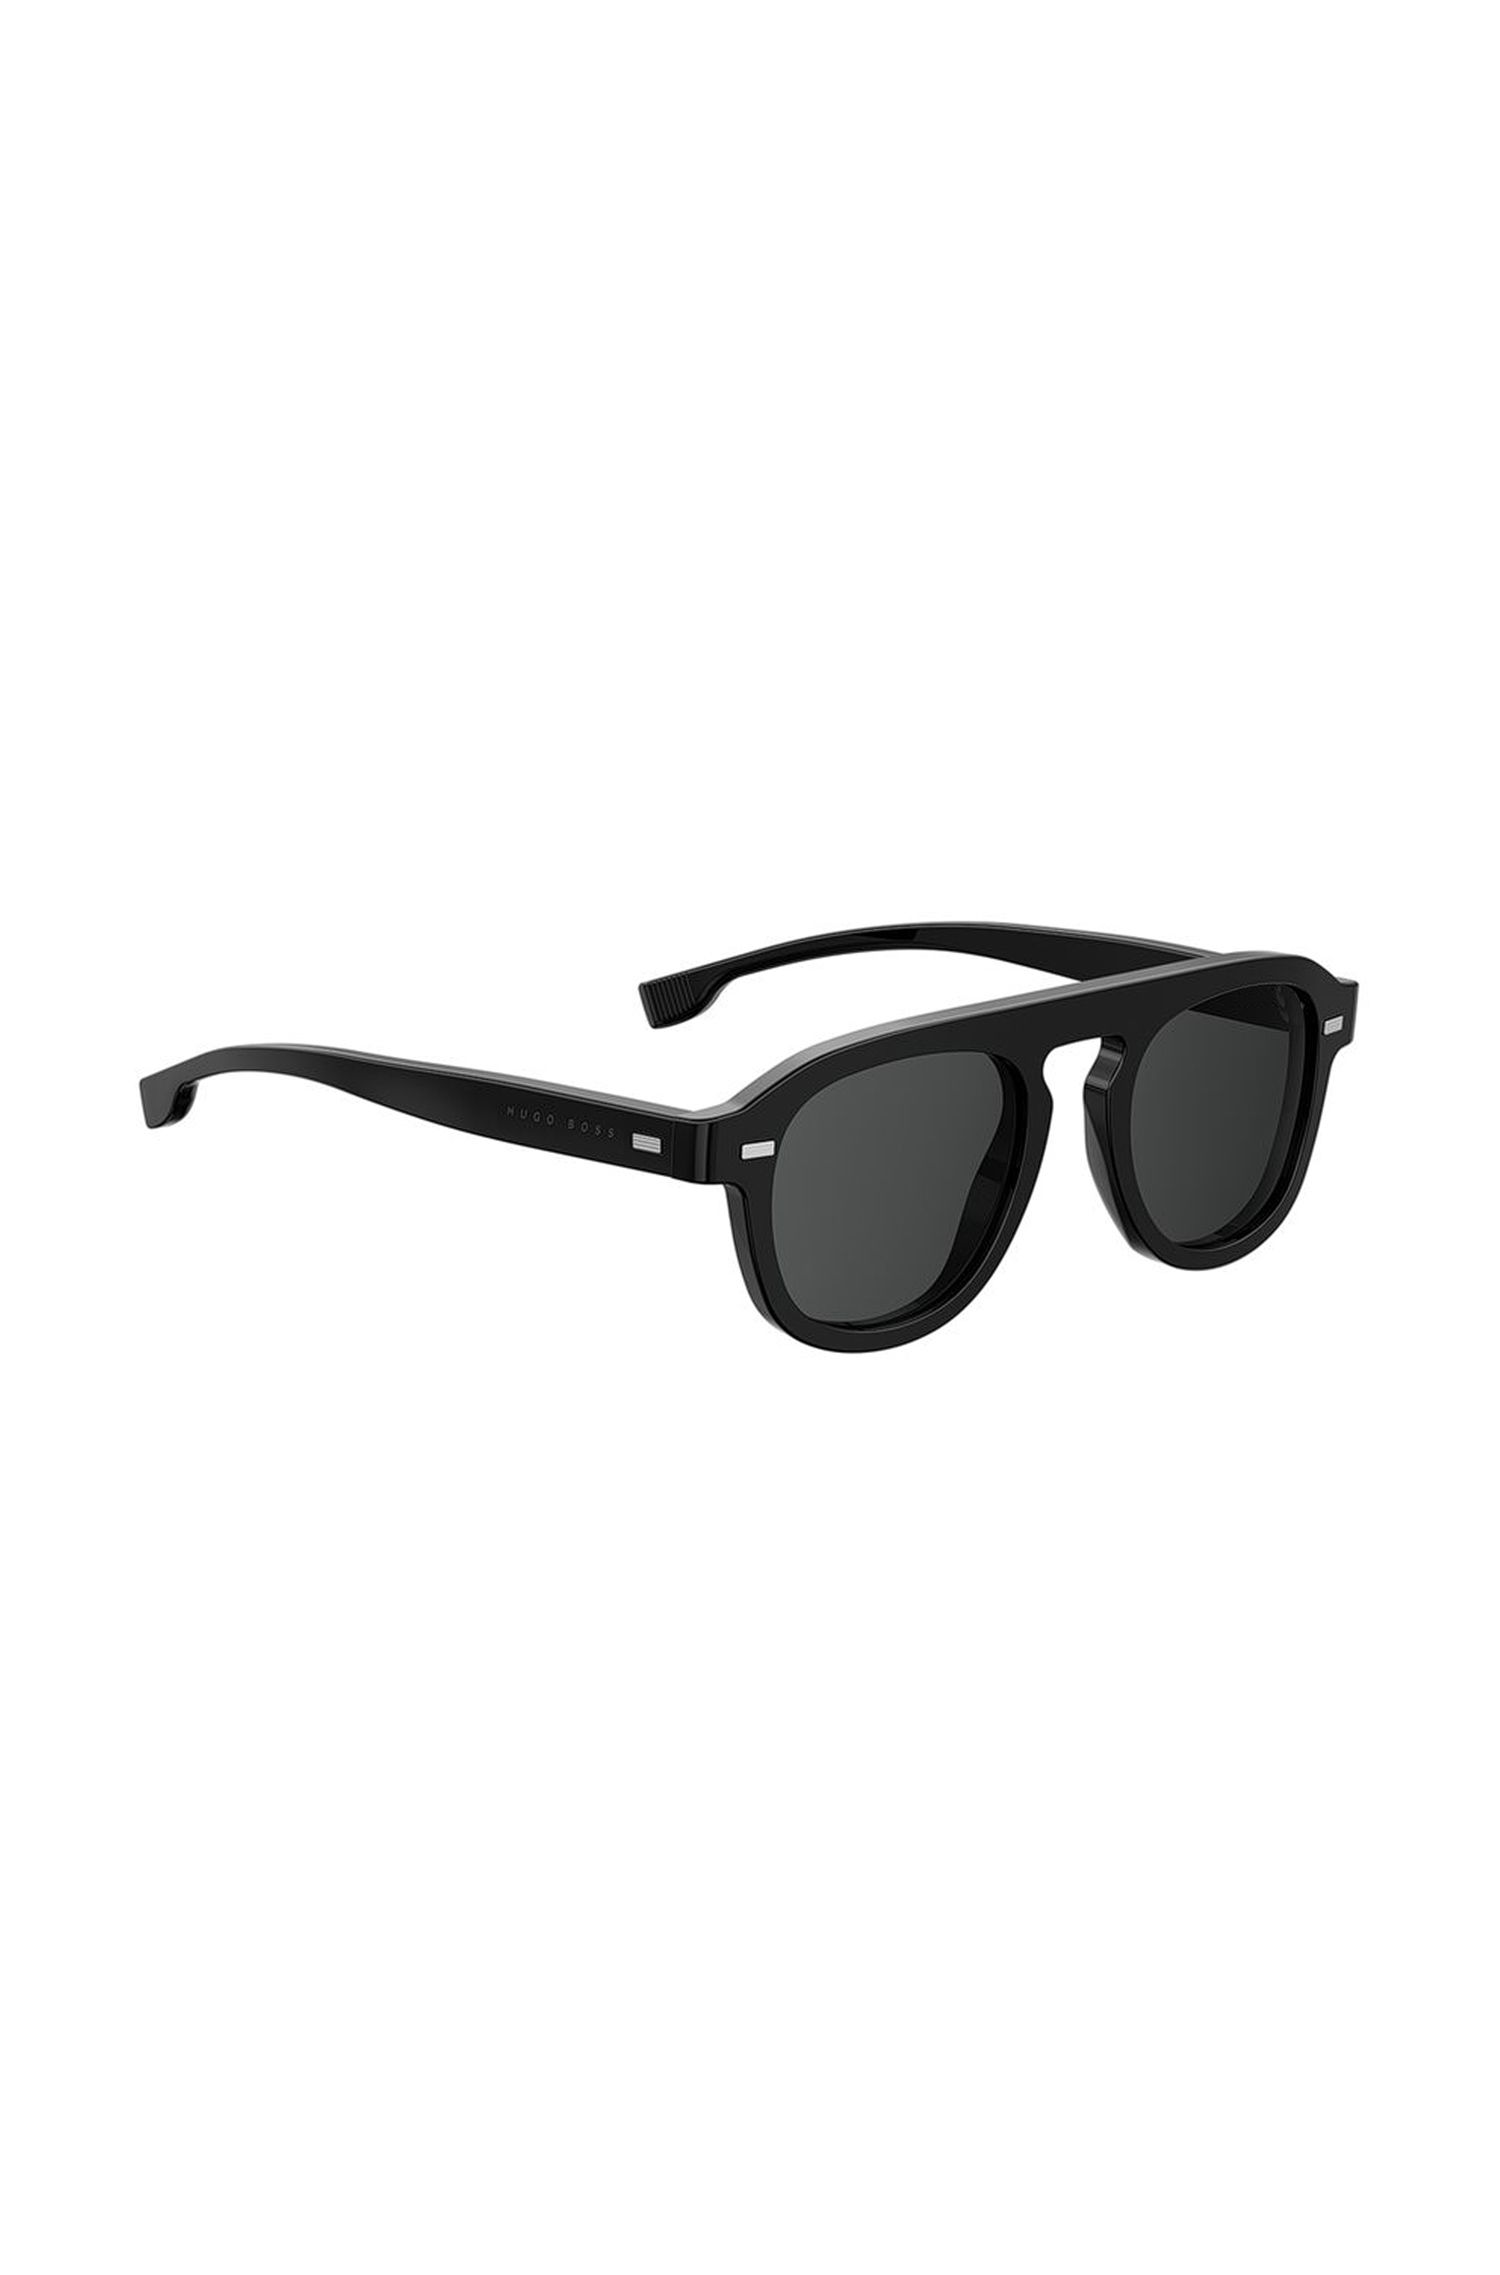 Vintage-inspired sunglasses with black acetate frames, Black